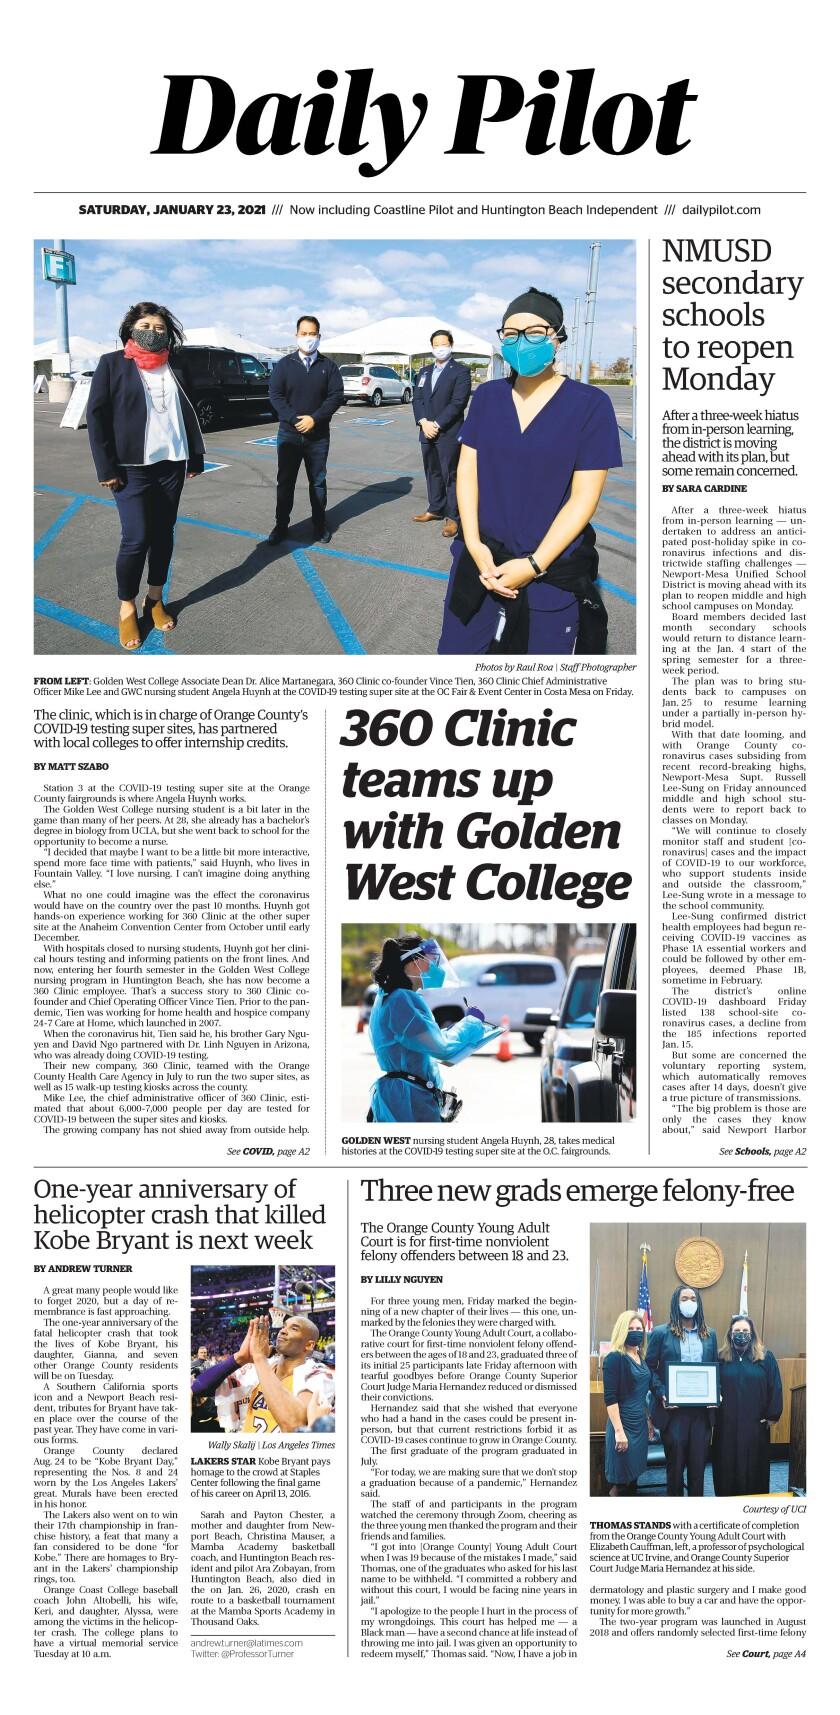 Front page of Daily Pilot e-newspaper for Saturday, Jan. 23, 2021.